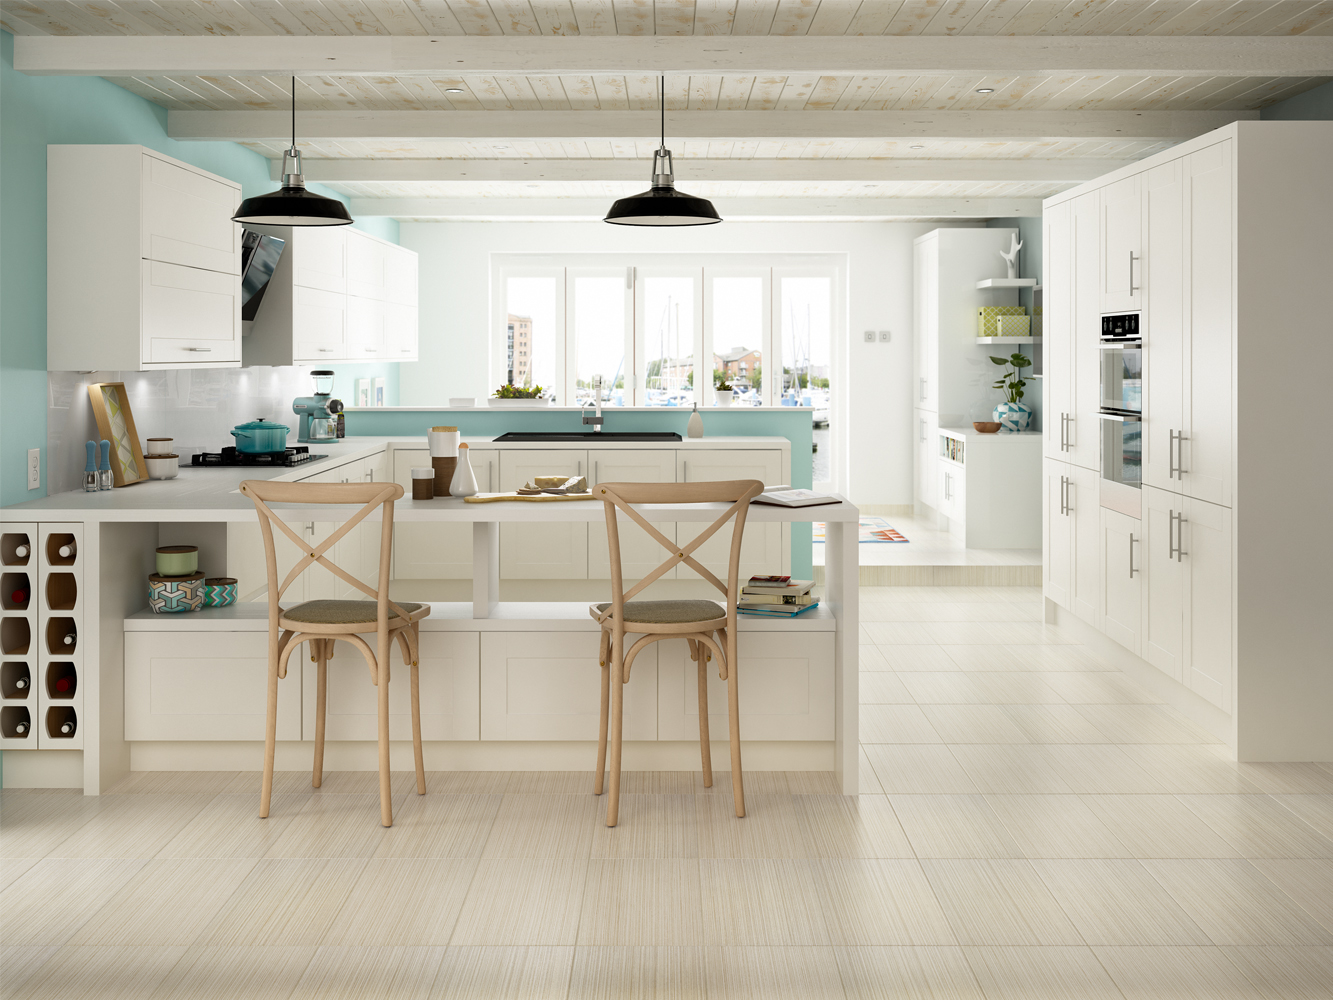 pix-us-cg-beach-kitchen